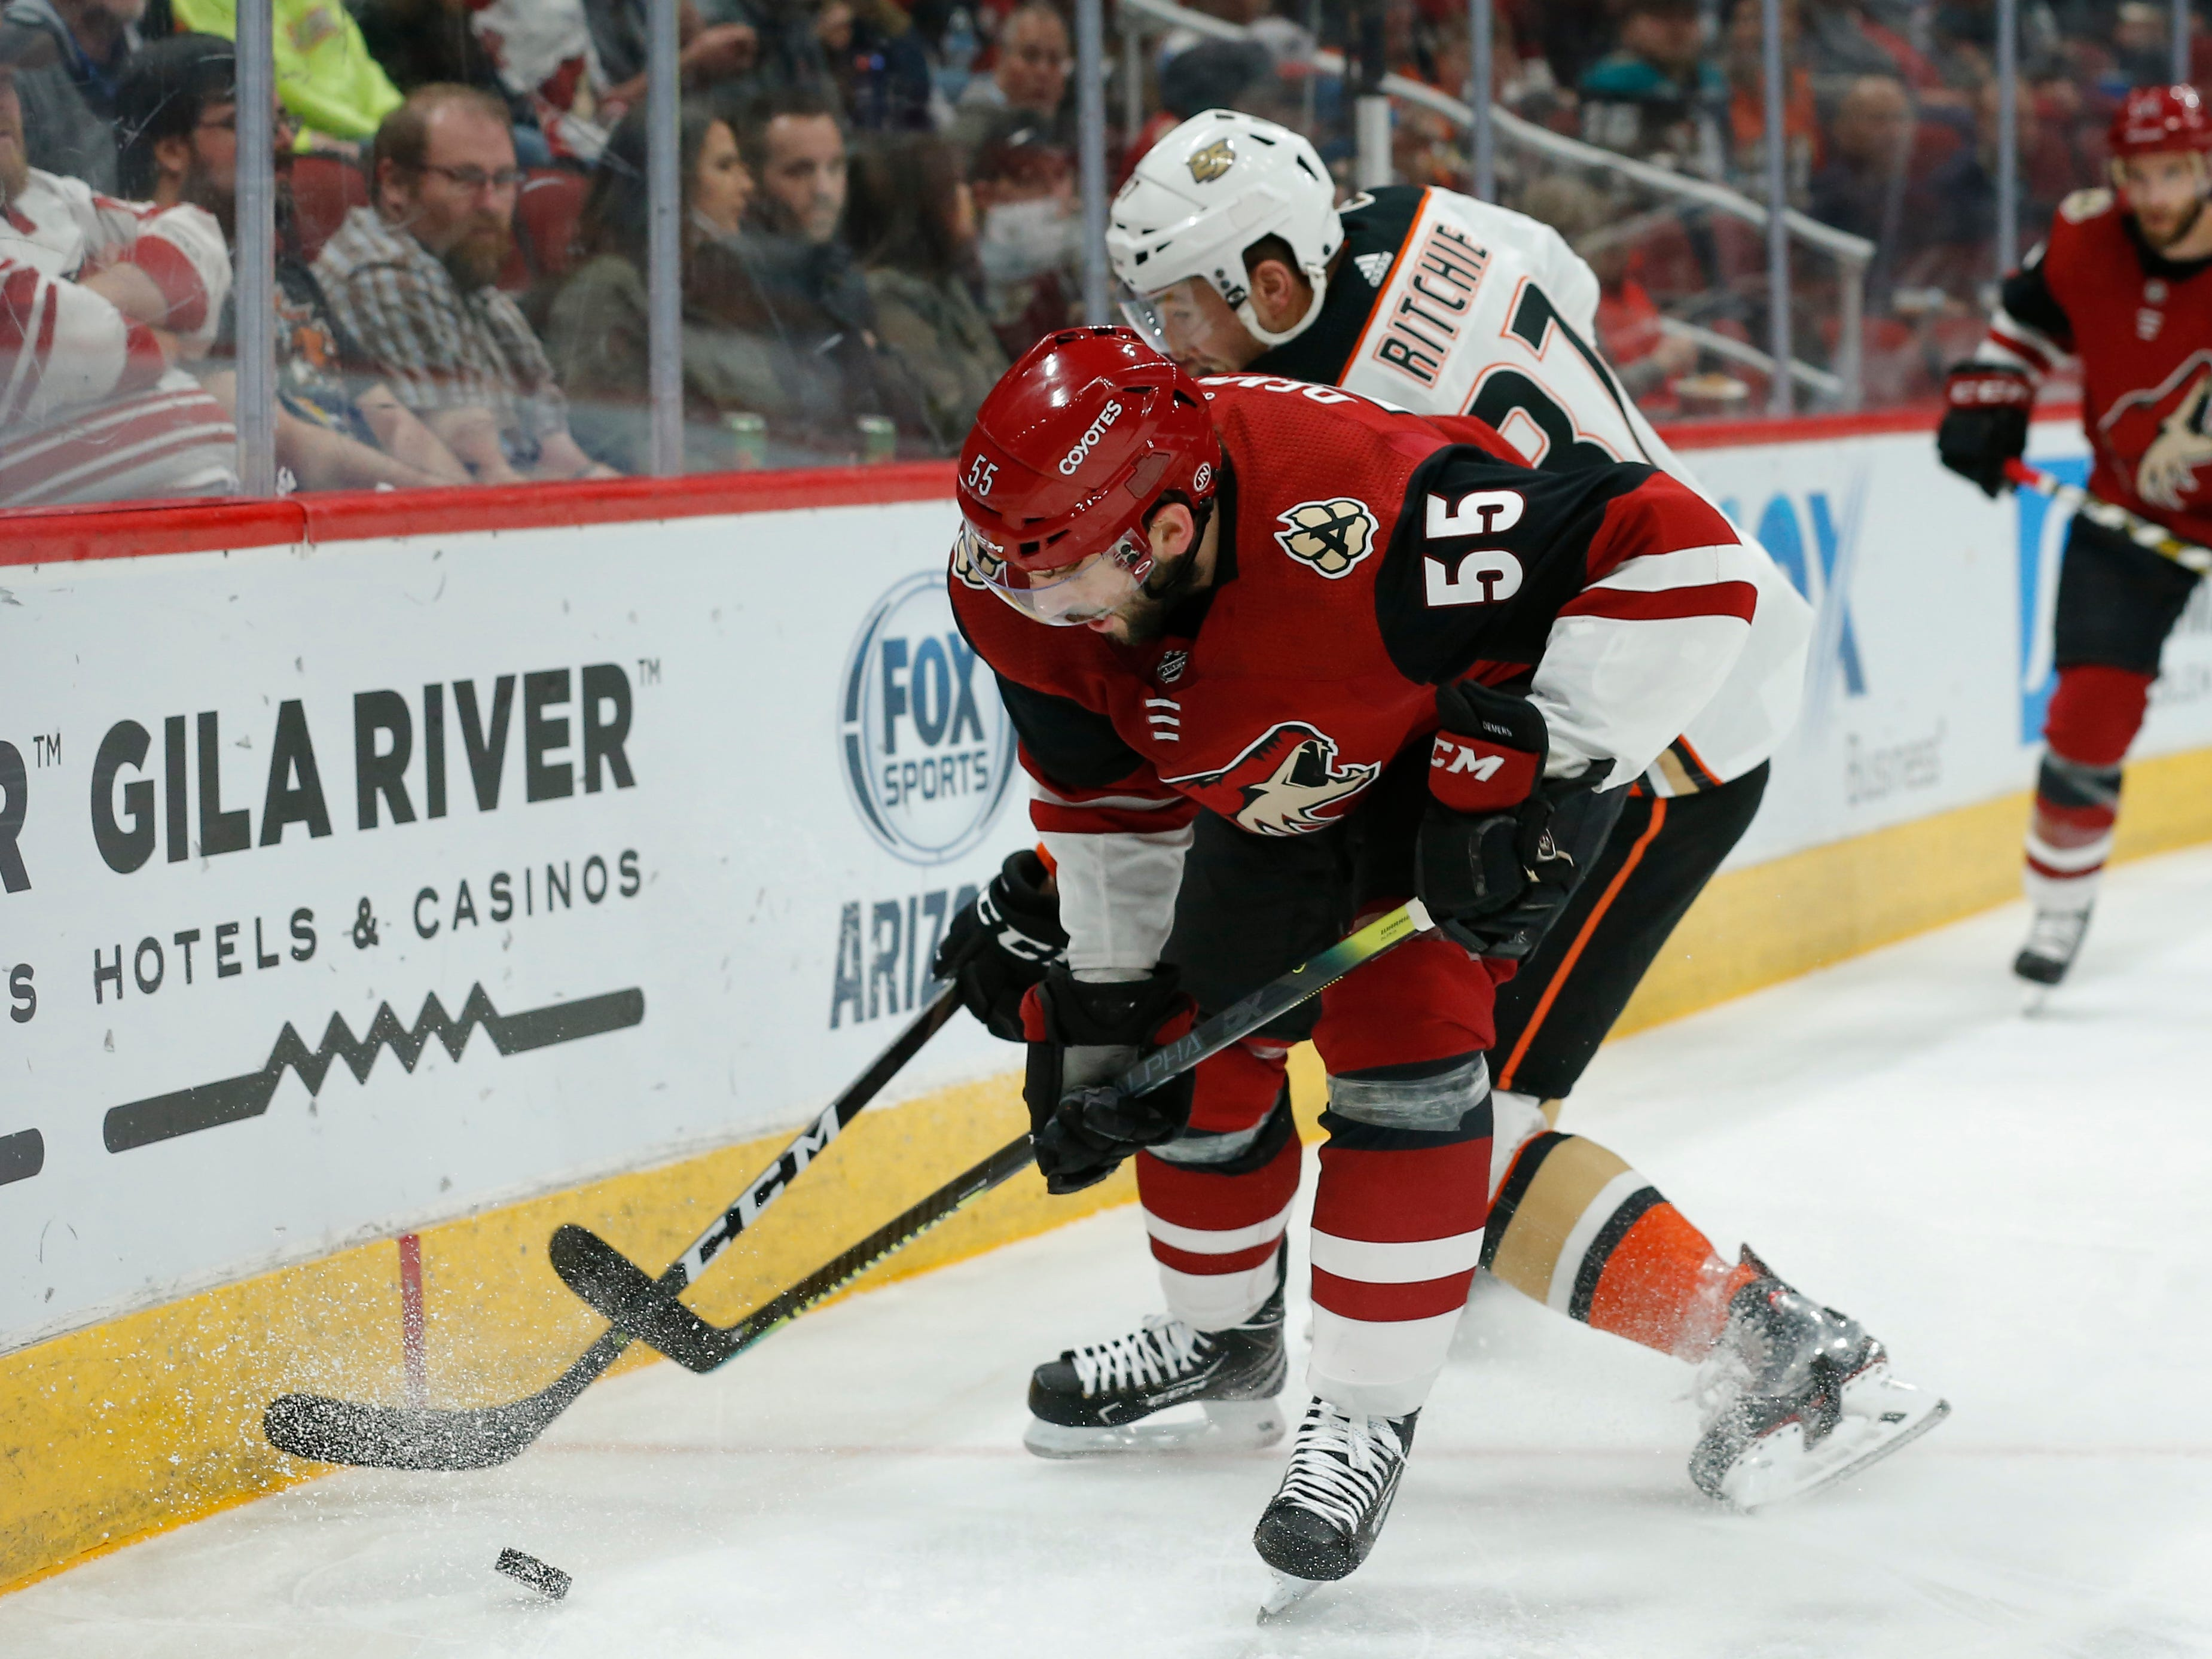 Arizona Coyotes defenseman Jason Demers (55) in the second period during an NHL hockey game against the Anaheim Ducks, Thursday, March 14, 2019, in Glendale, Ariz.